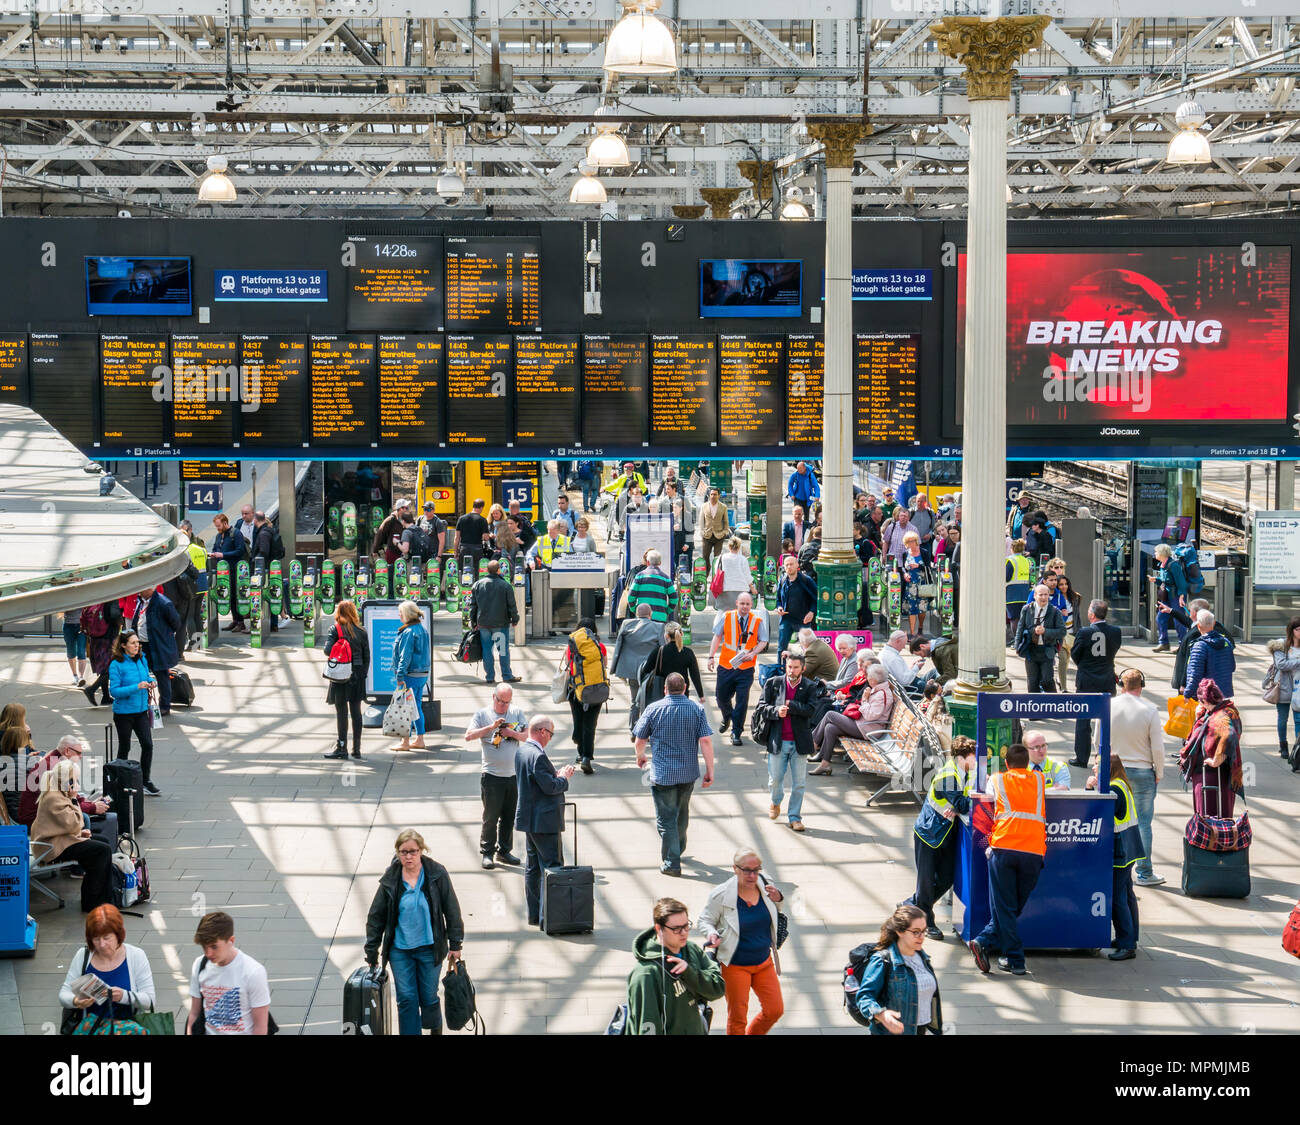 Passengers in busy main concourse, Waverley Railway Station, Edinburgh, Scotland, UK with breaking news headline on giant TV screen - Stock Image